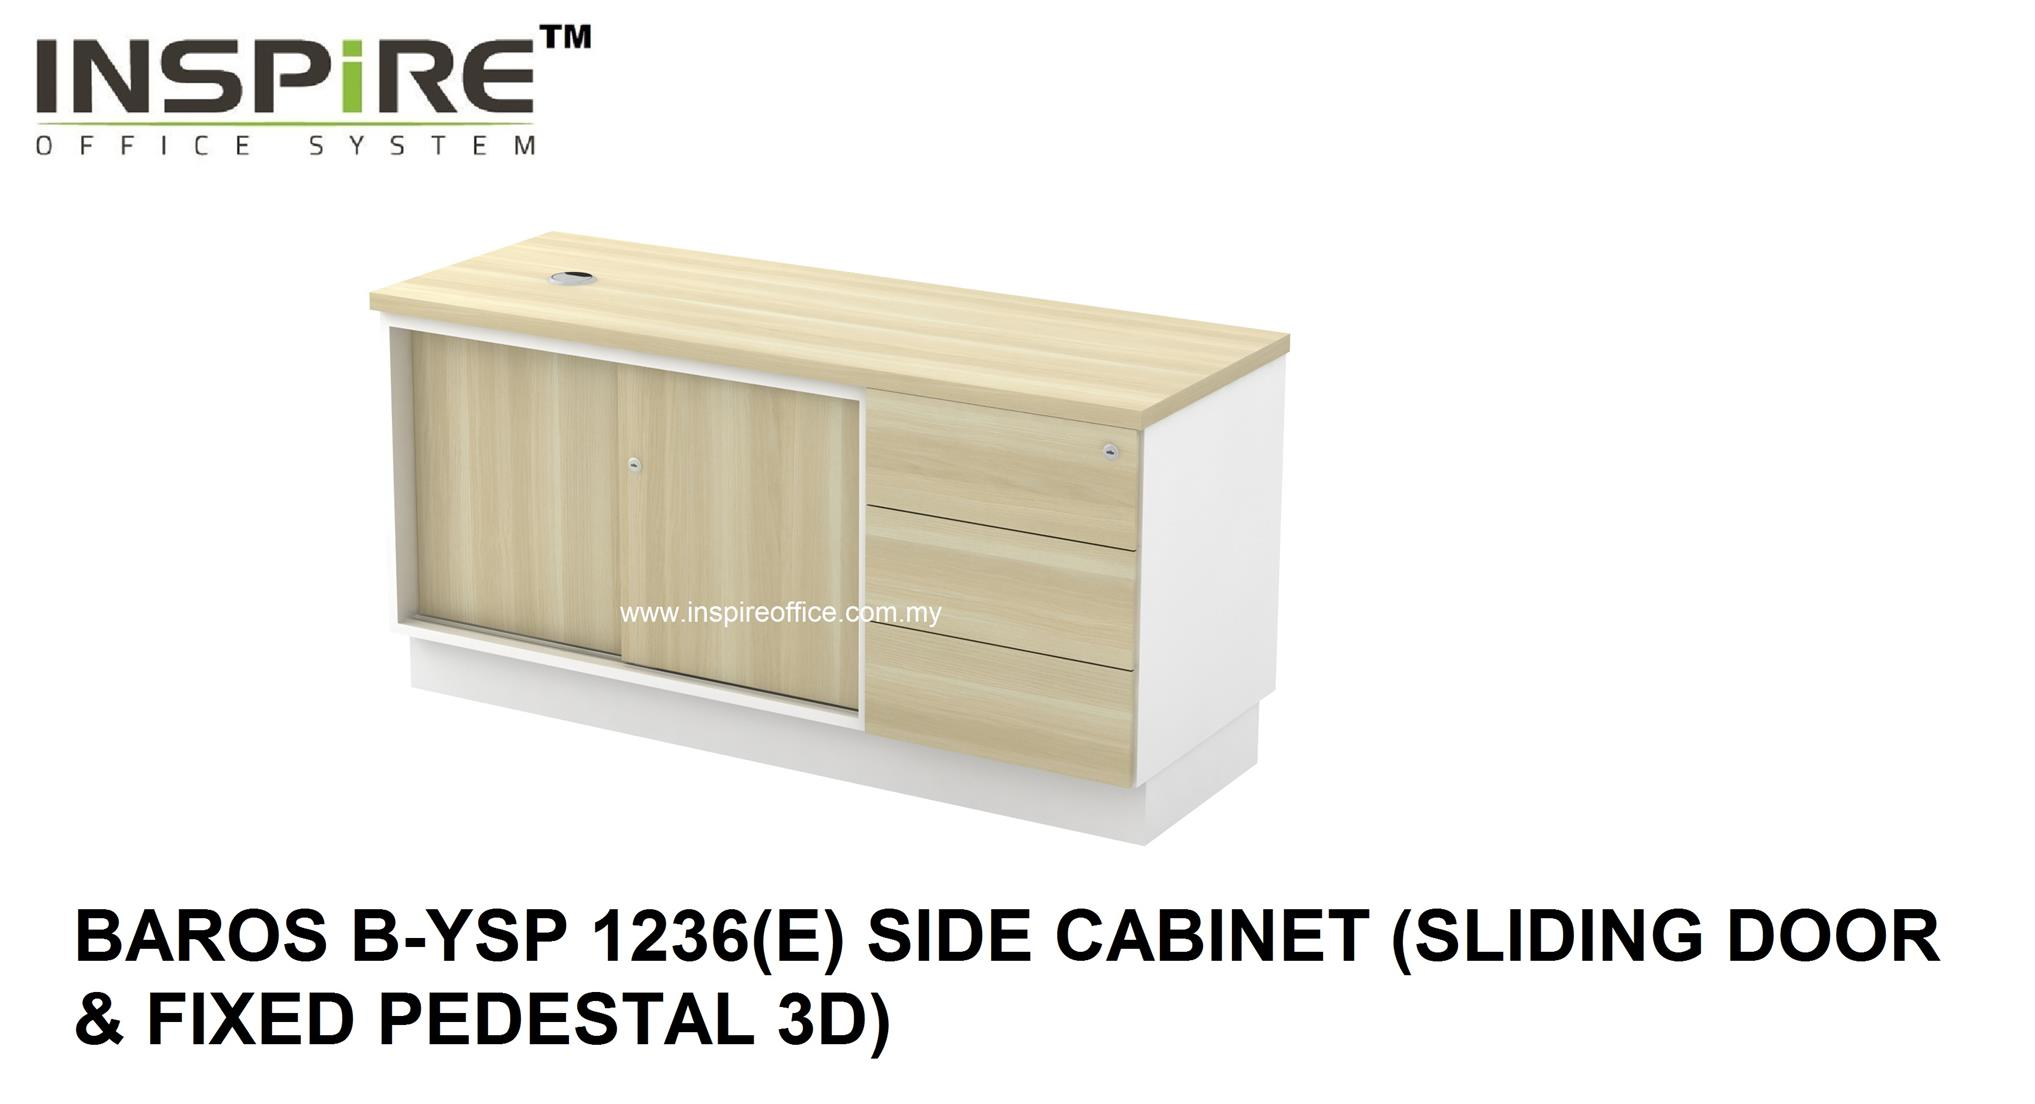 BAROS B-YSP 1236(E) SIDE CABINET (SLIDING DOOR & FIXED PEDESTAL 3D)